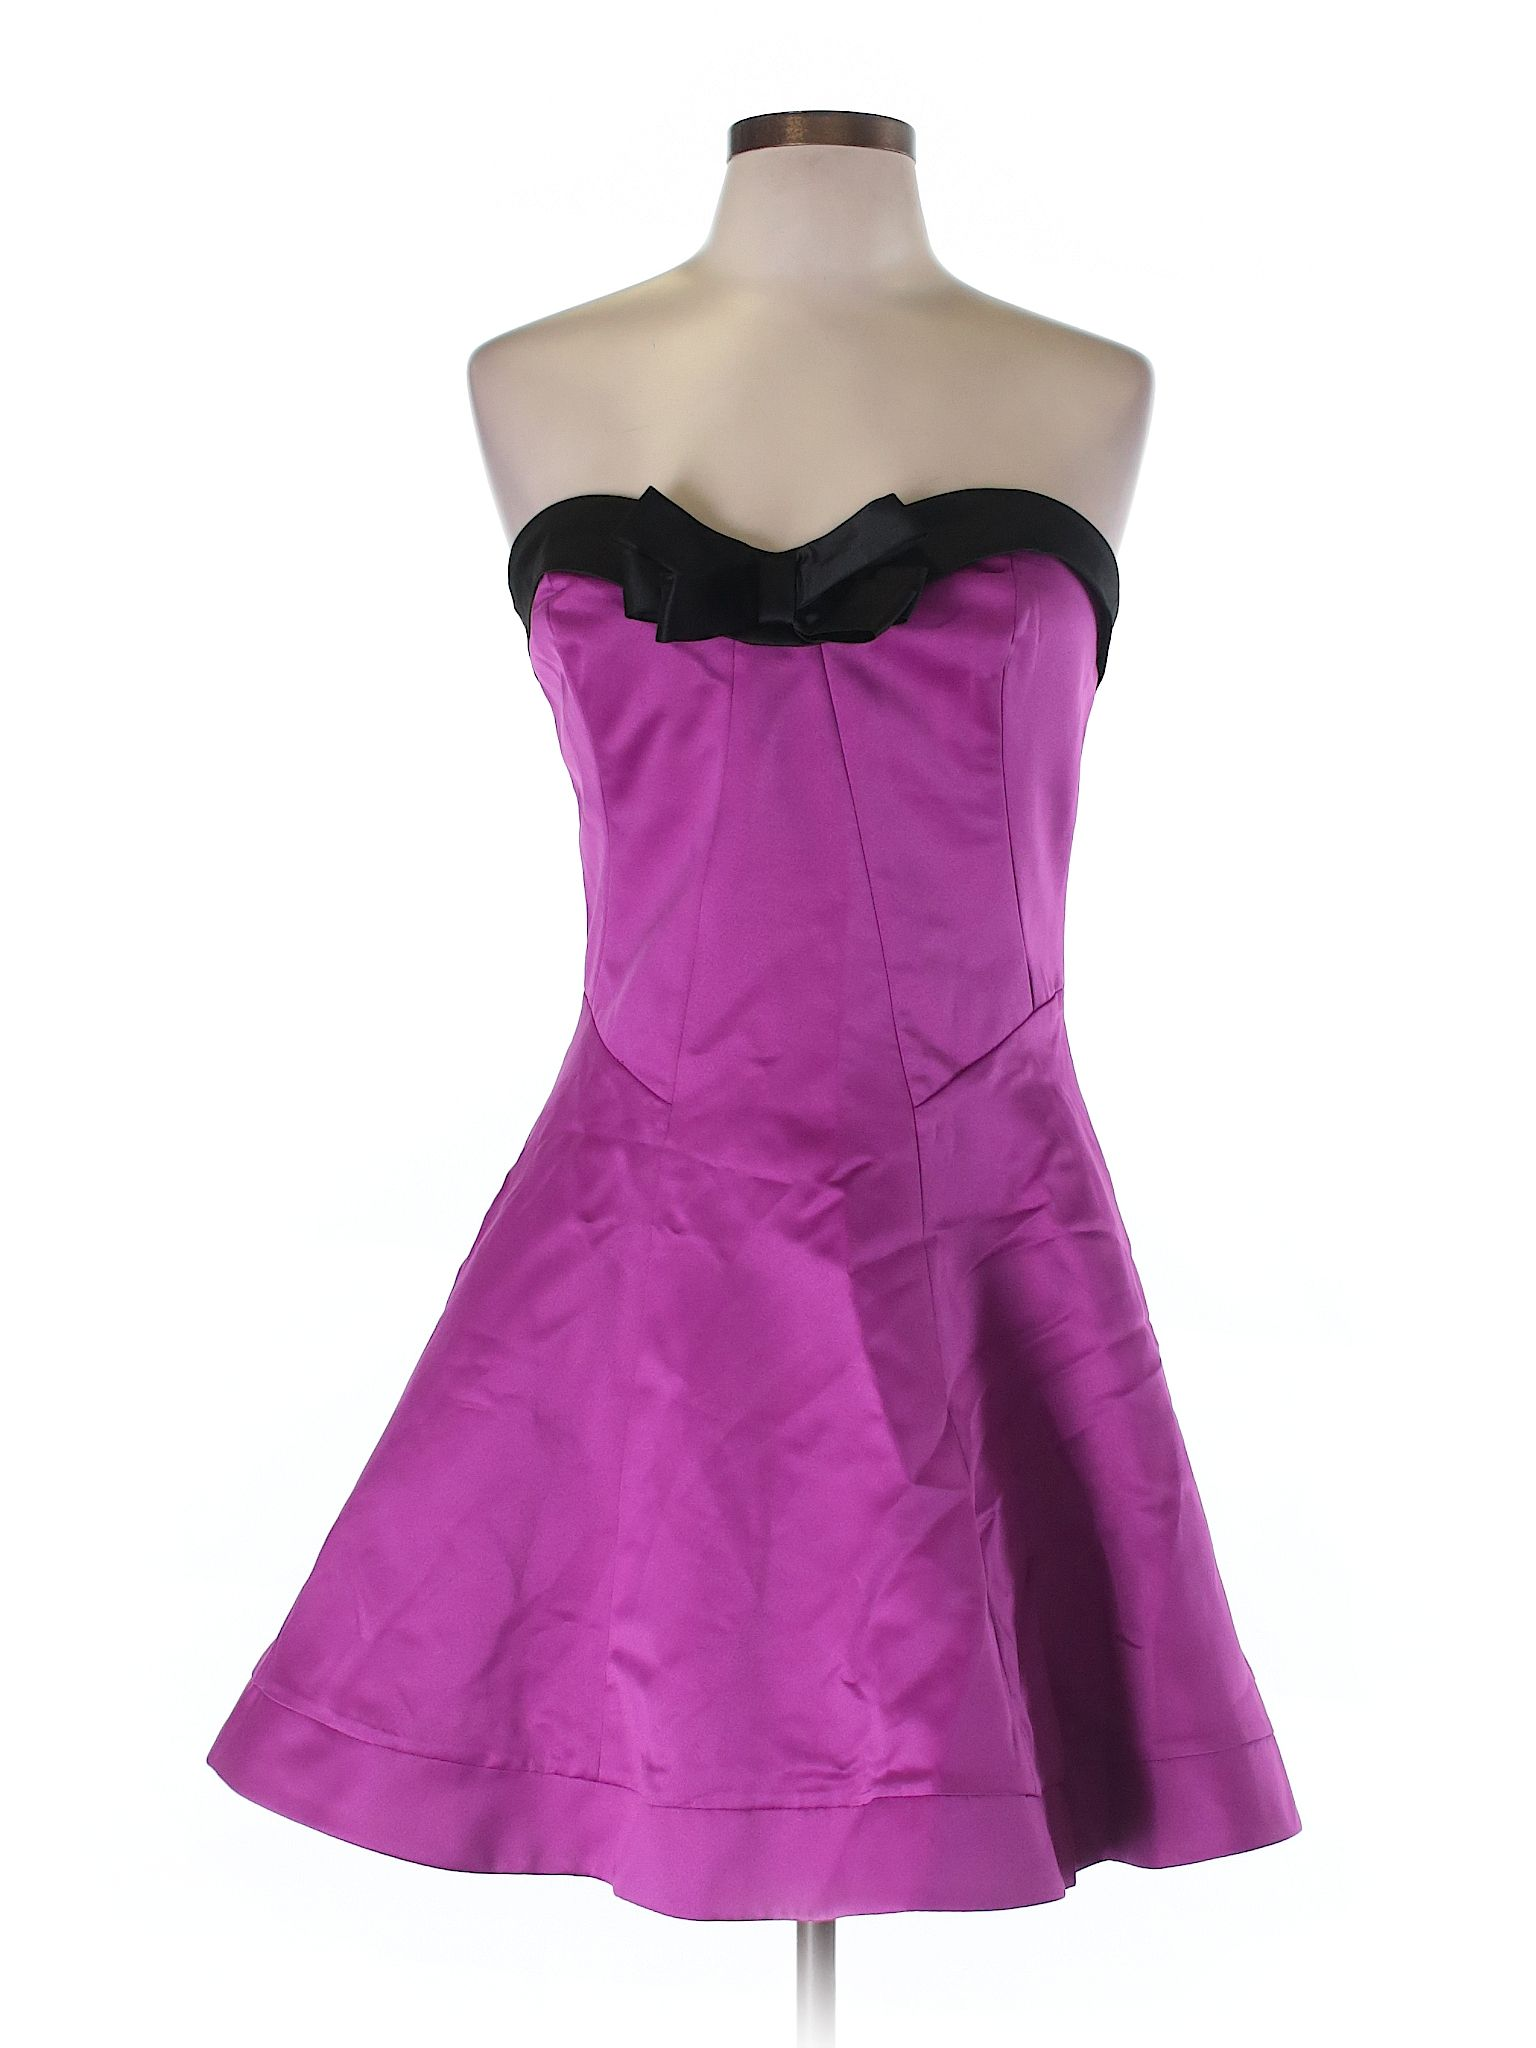 Bonito Betsey Johnson Cocktail Dresses Modelo - Ideas de Vestidos de ...